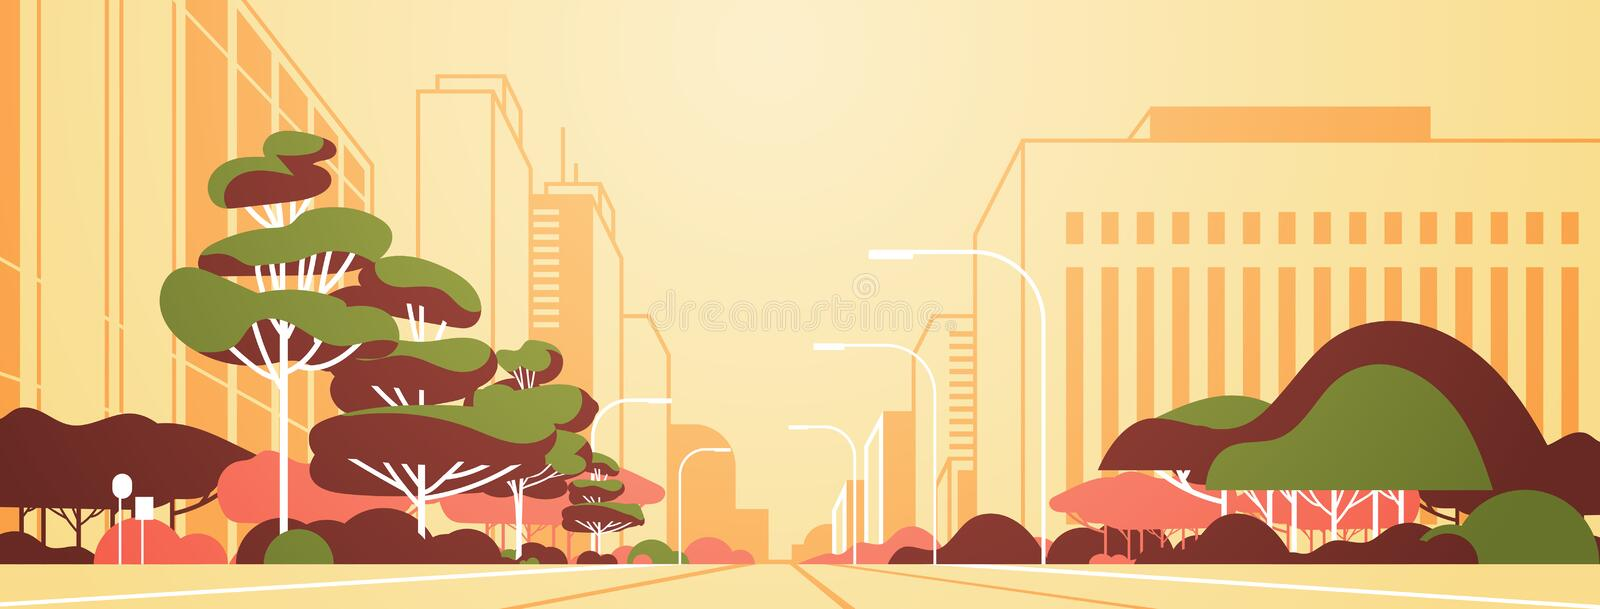 Modern city panorama road with street lamps skyscrapers empty nobody urban cityscape background flat horizontal banner. Vector illustration royalty free illustration